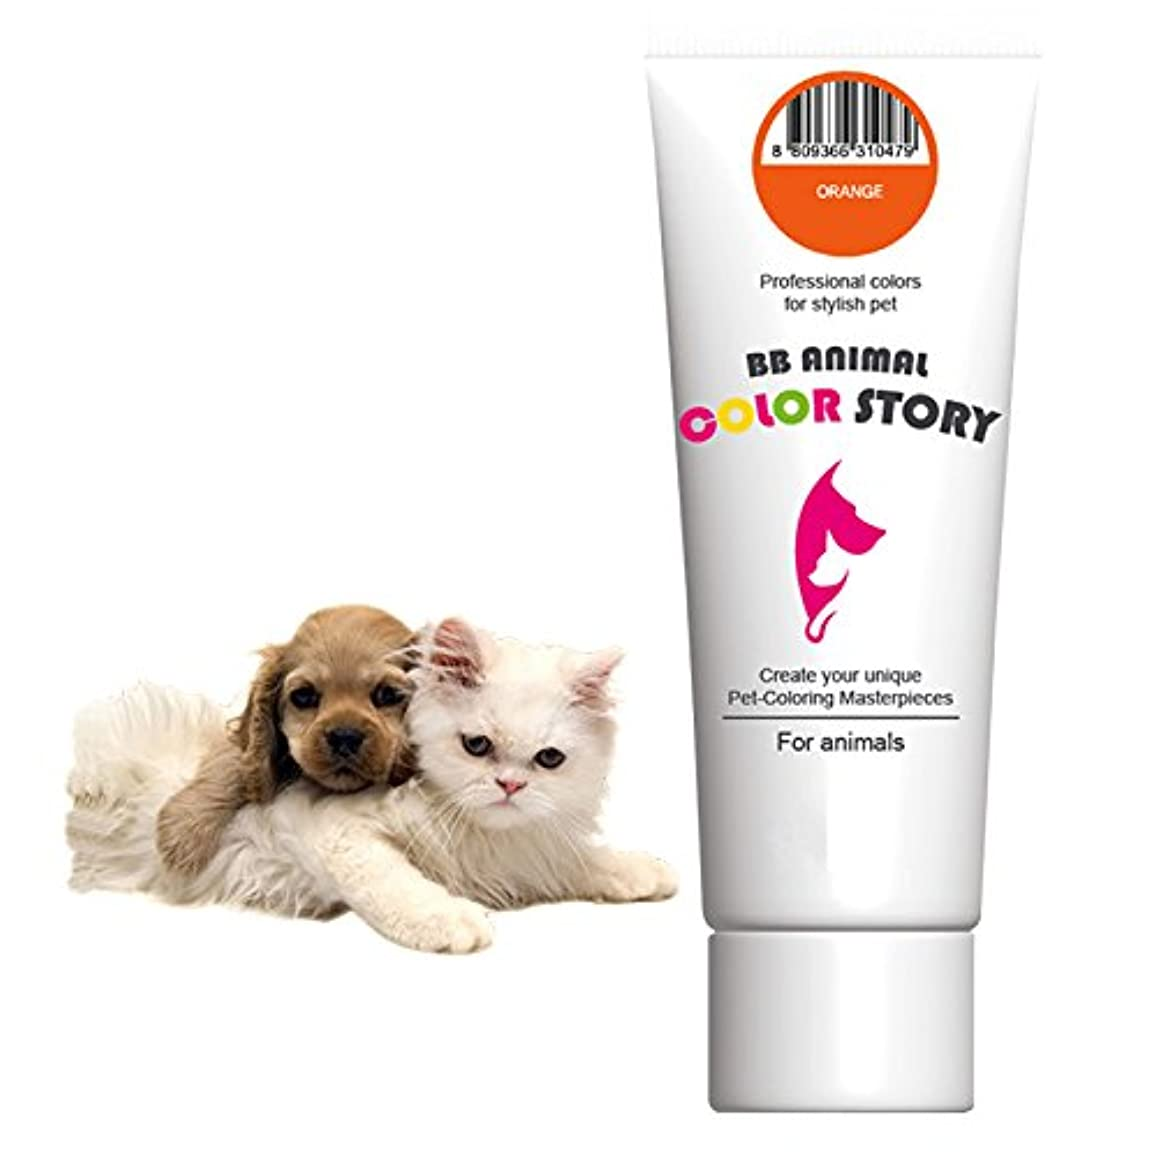 広く不変ヘクタール毛染め, 犬ヘアダイ, Orange, カラーリング Dog Hair Dye Hair Bleach Hair Coloring Professional Colors for Stylish Pet 50ml 並行輸入